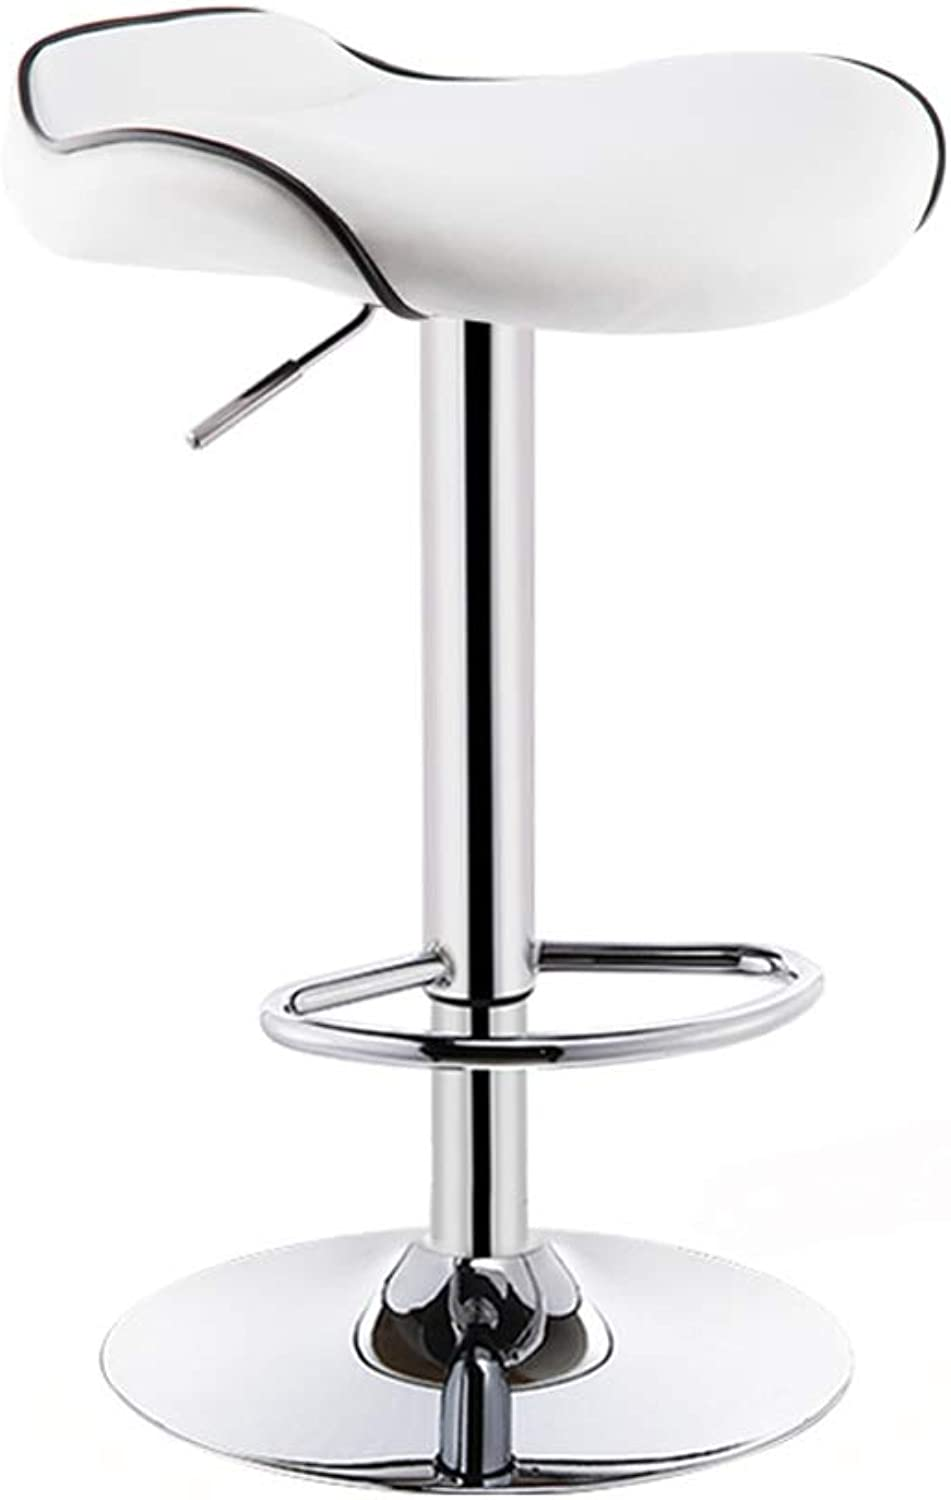 Bar stools Artificial Leather redatable Adjustable Height Chrome Metal Fittings bar Stool (color   White, Size   62-82cm)